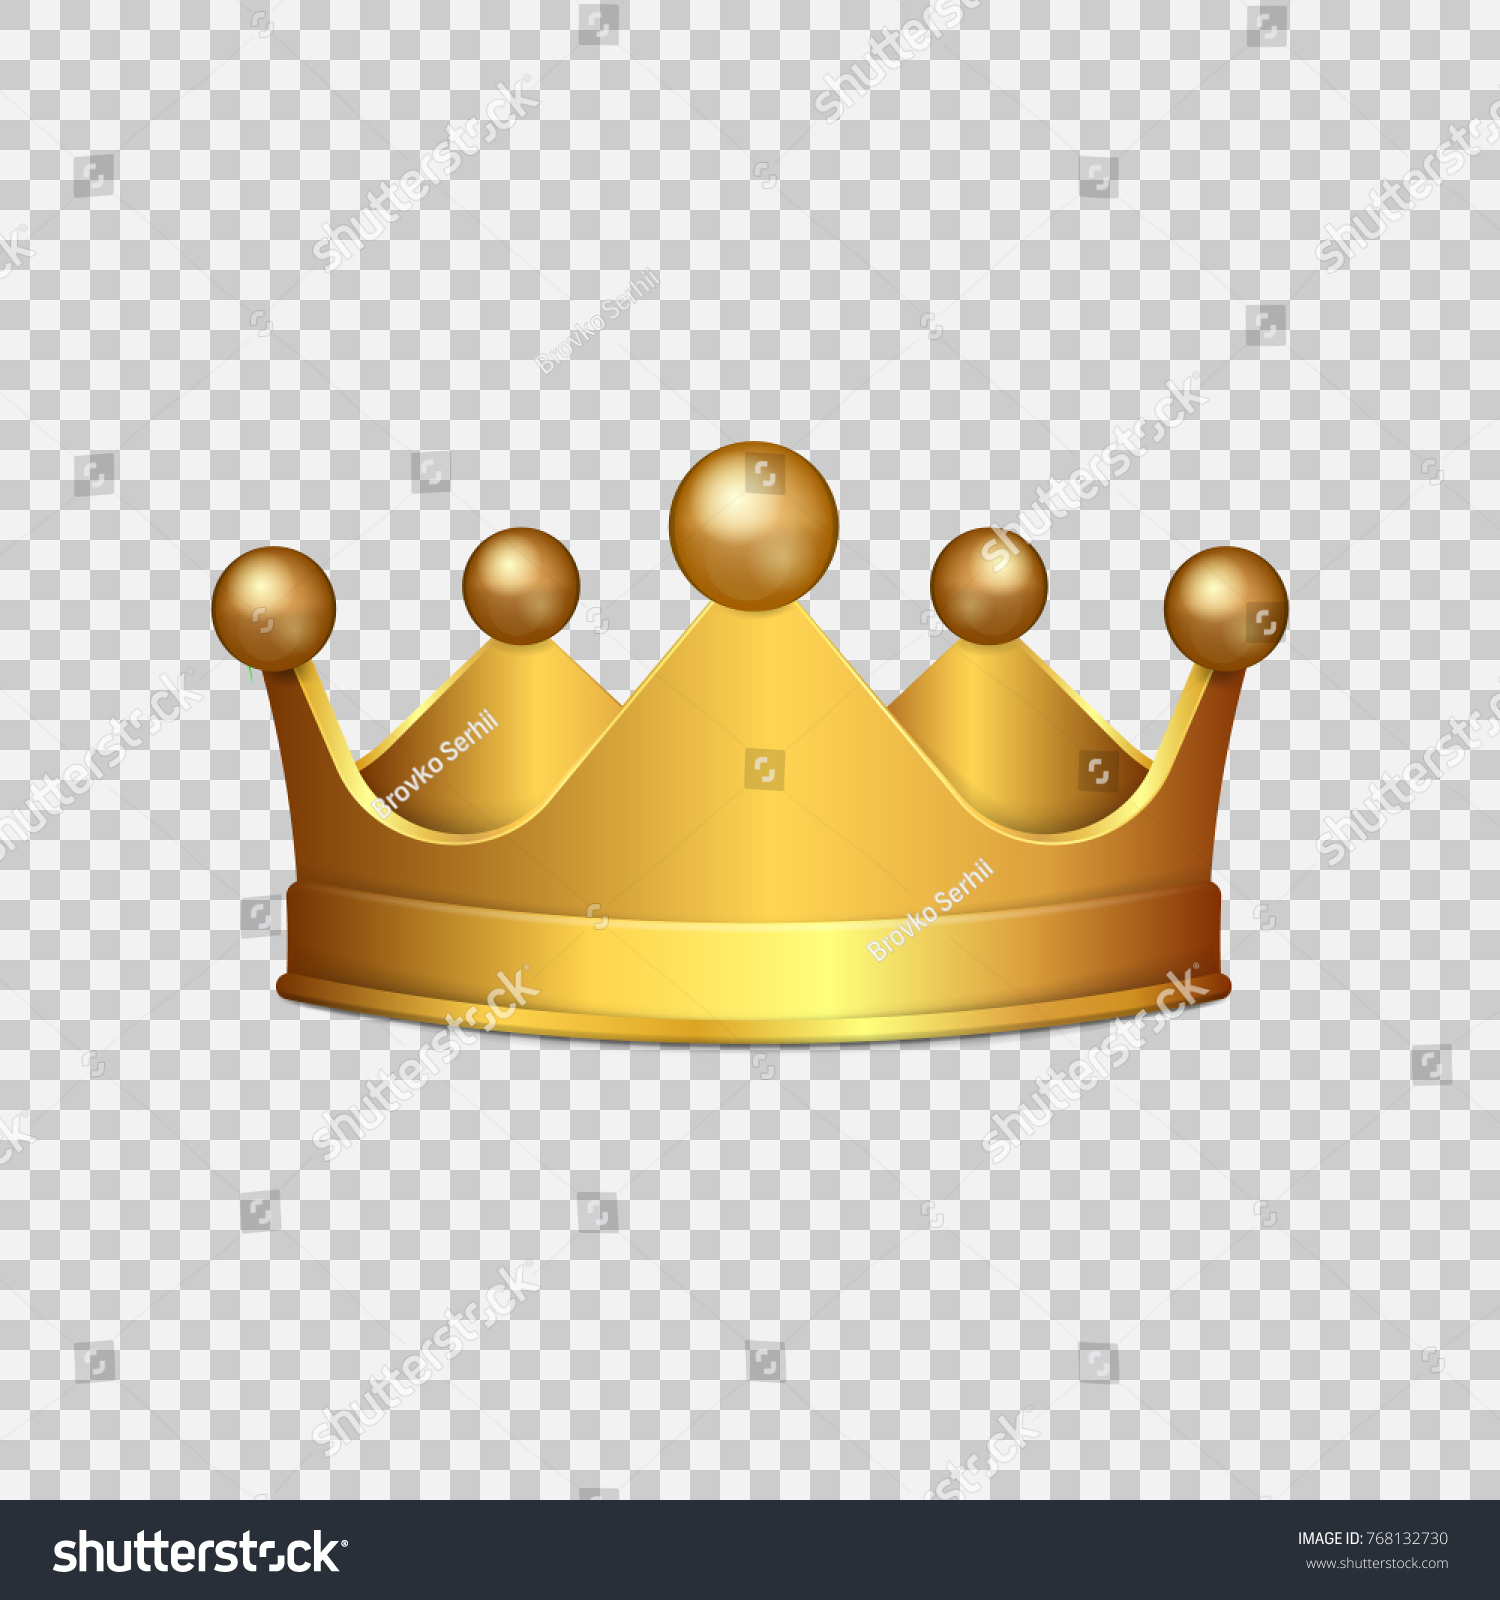 Gold Crown Png Vector